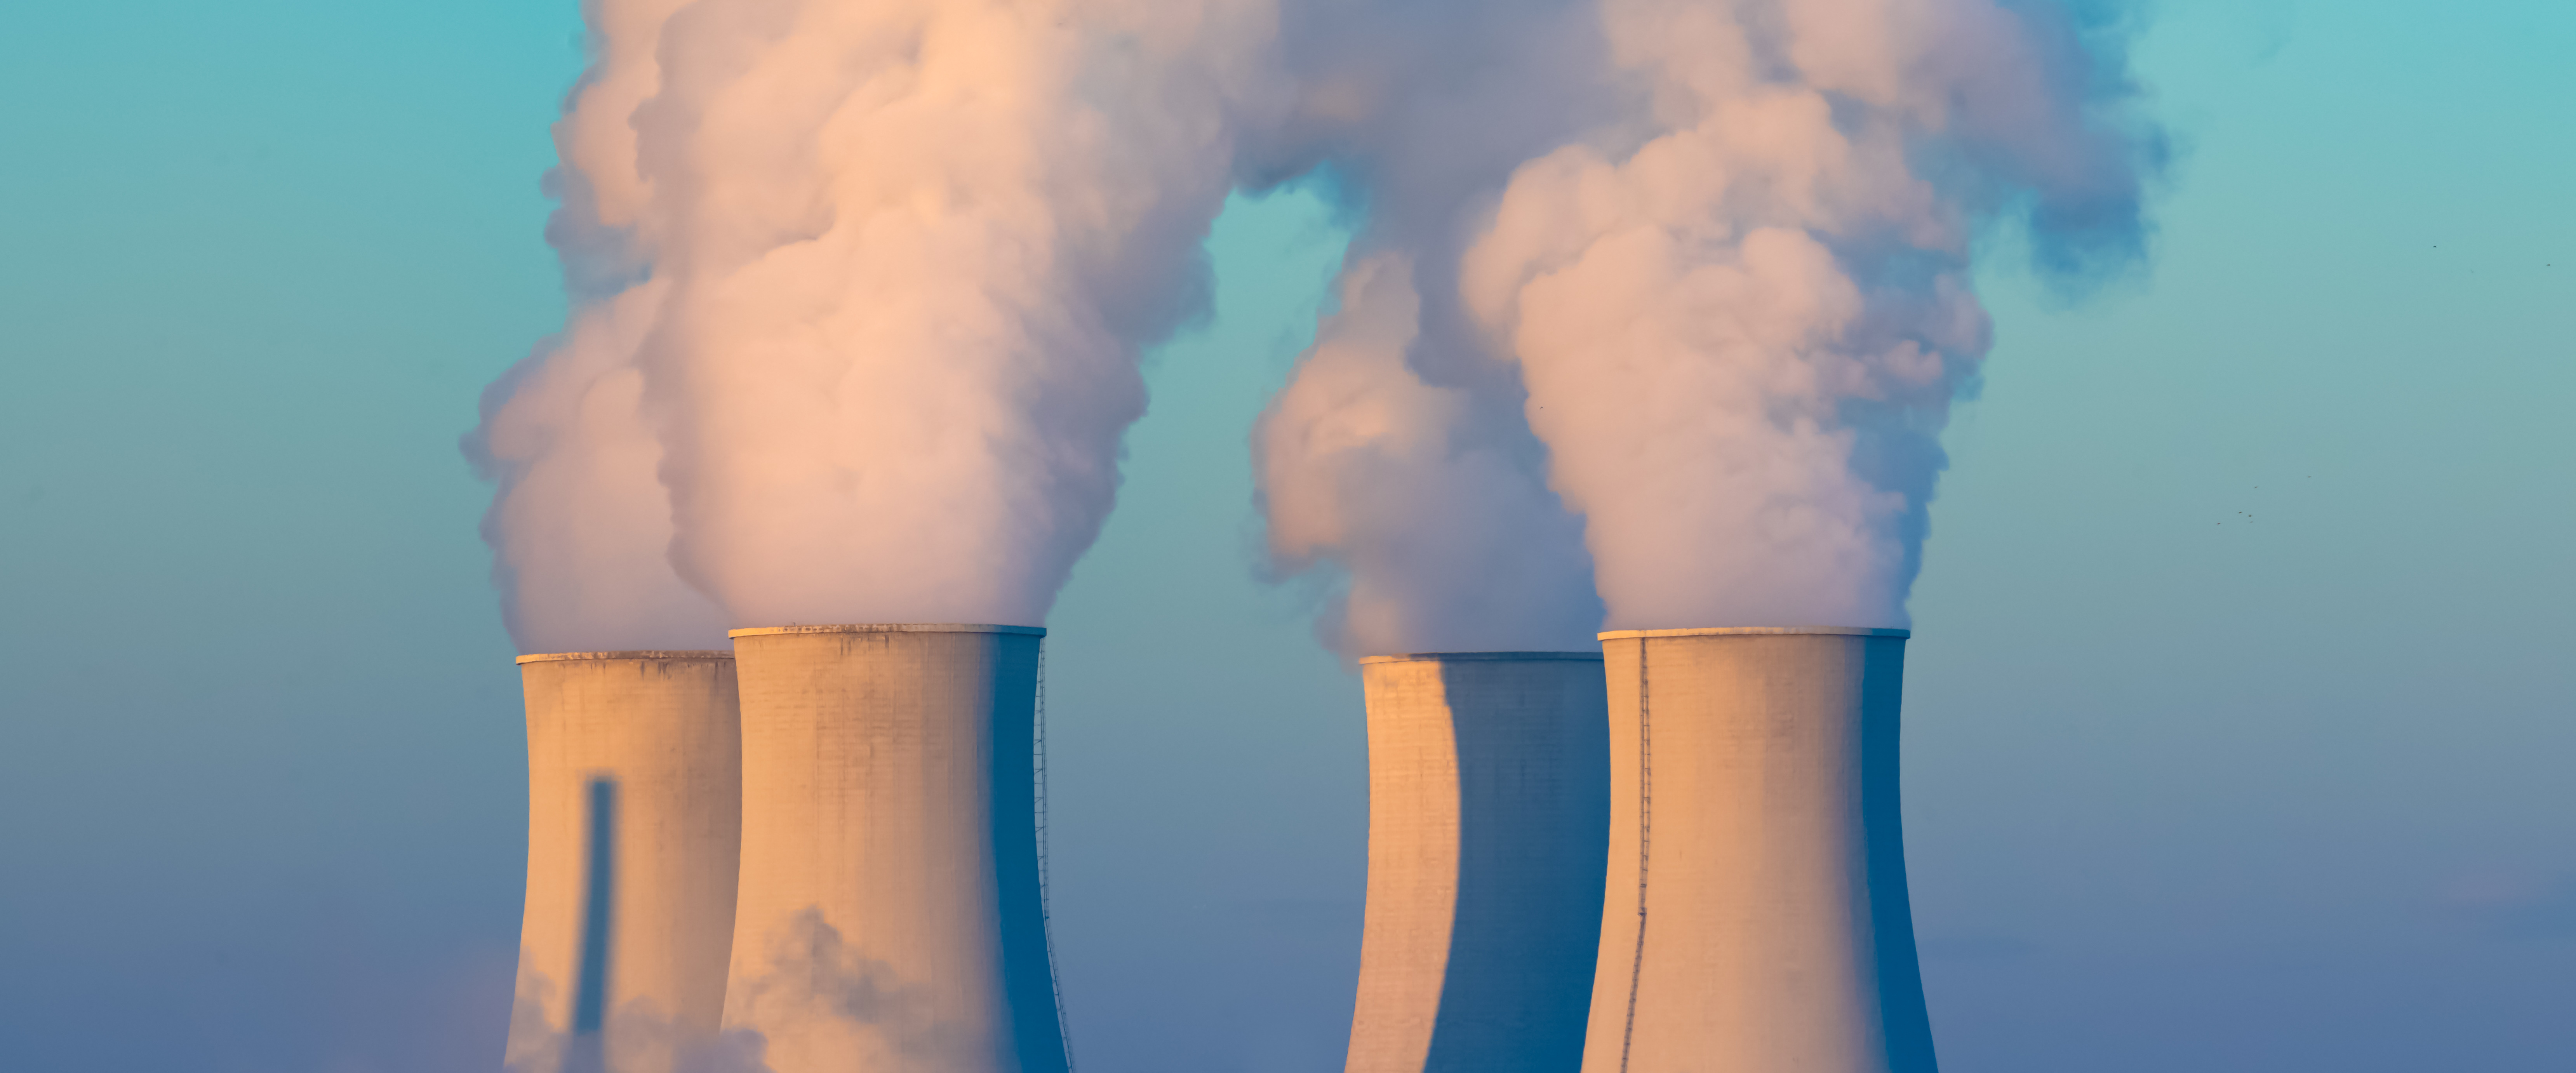 nuclear power plant europe energy sustainable development environment risks radioactivity for or against nuclear power cooling towers